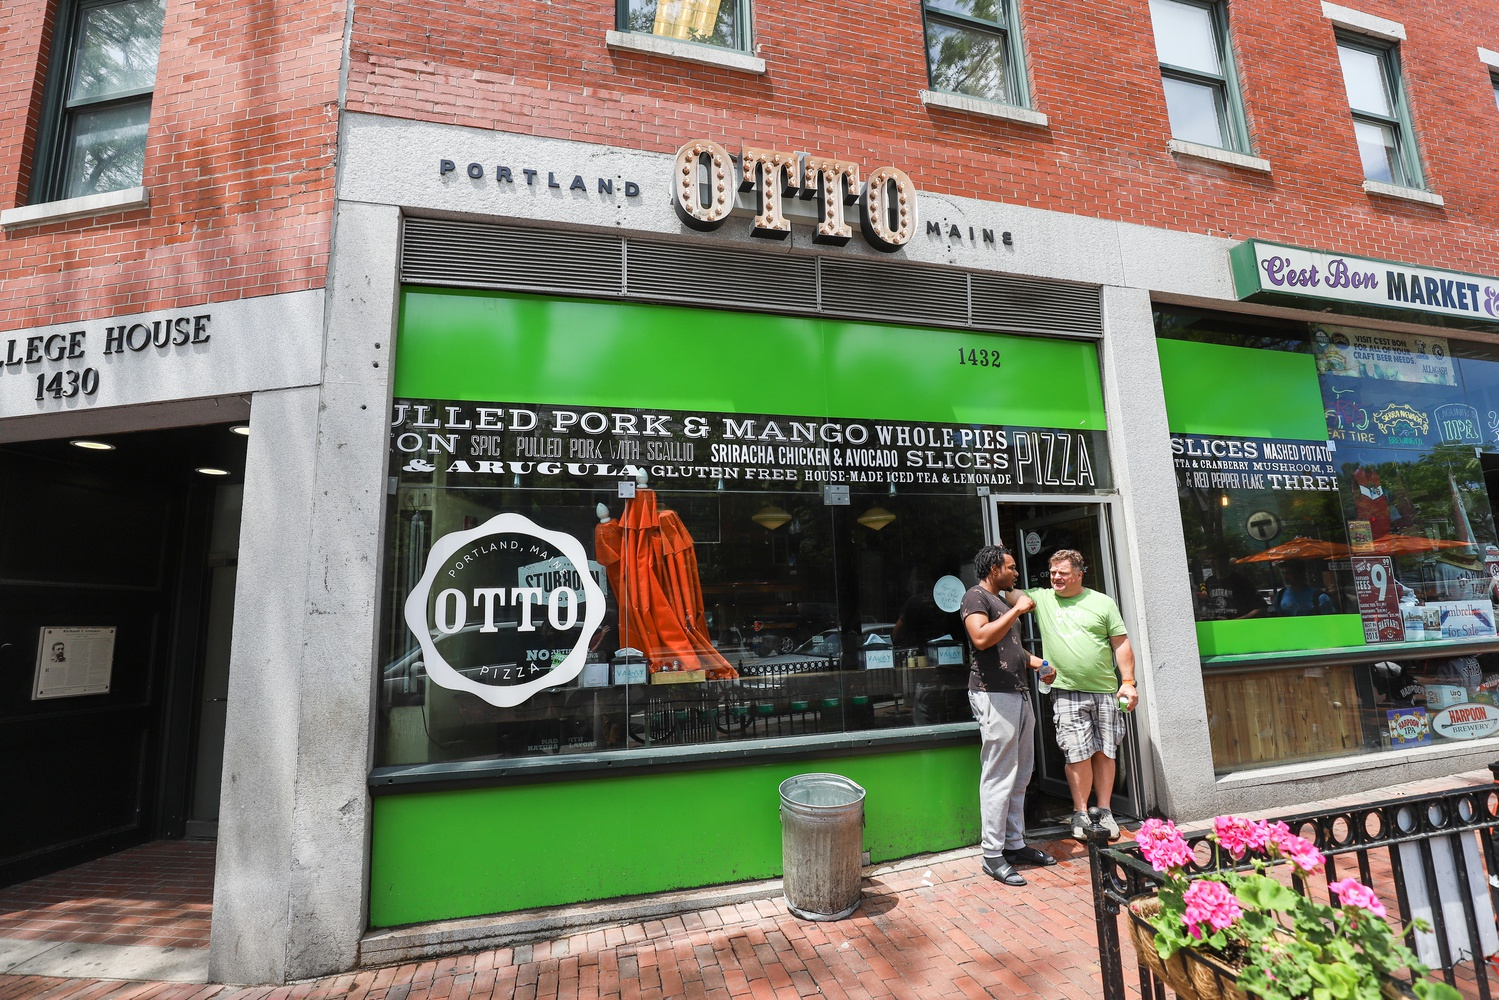 A fire broke out Monday morning at OTTO Pizza's Harvard Square location at 1436 Massachusetts Ave.